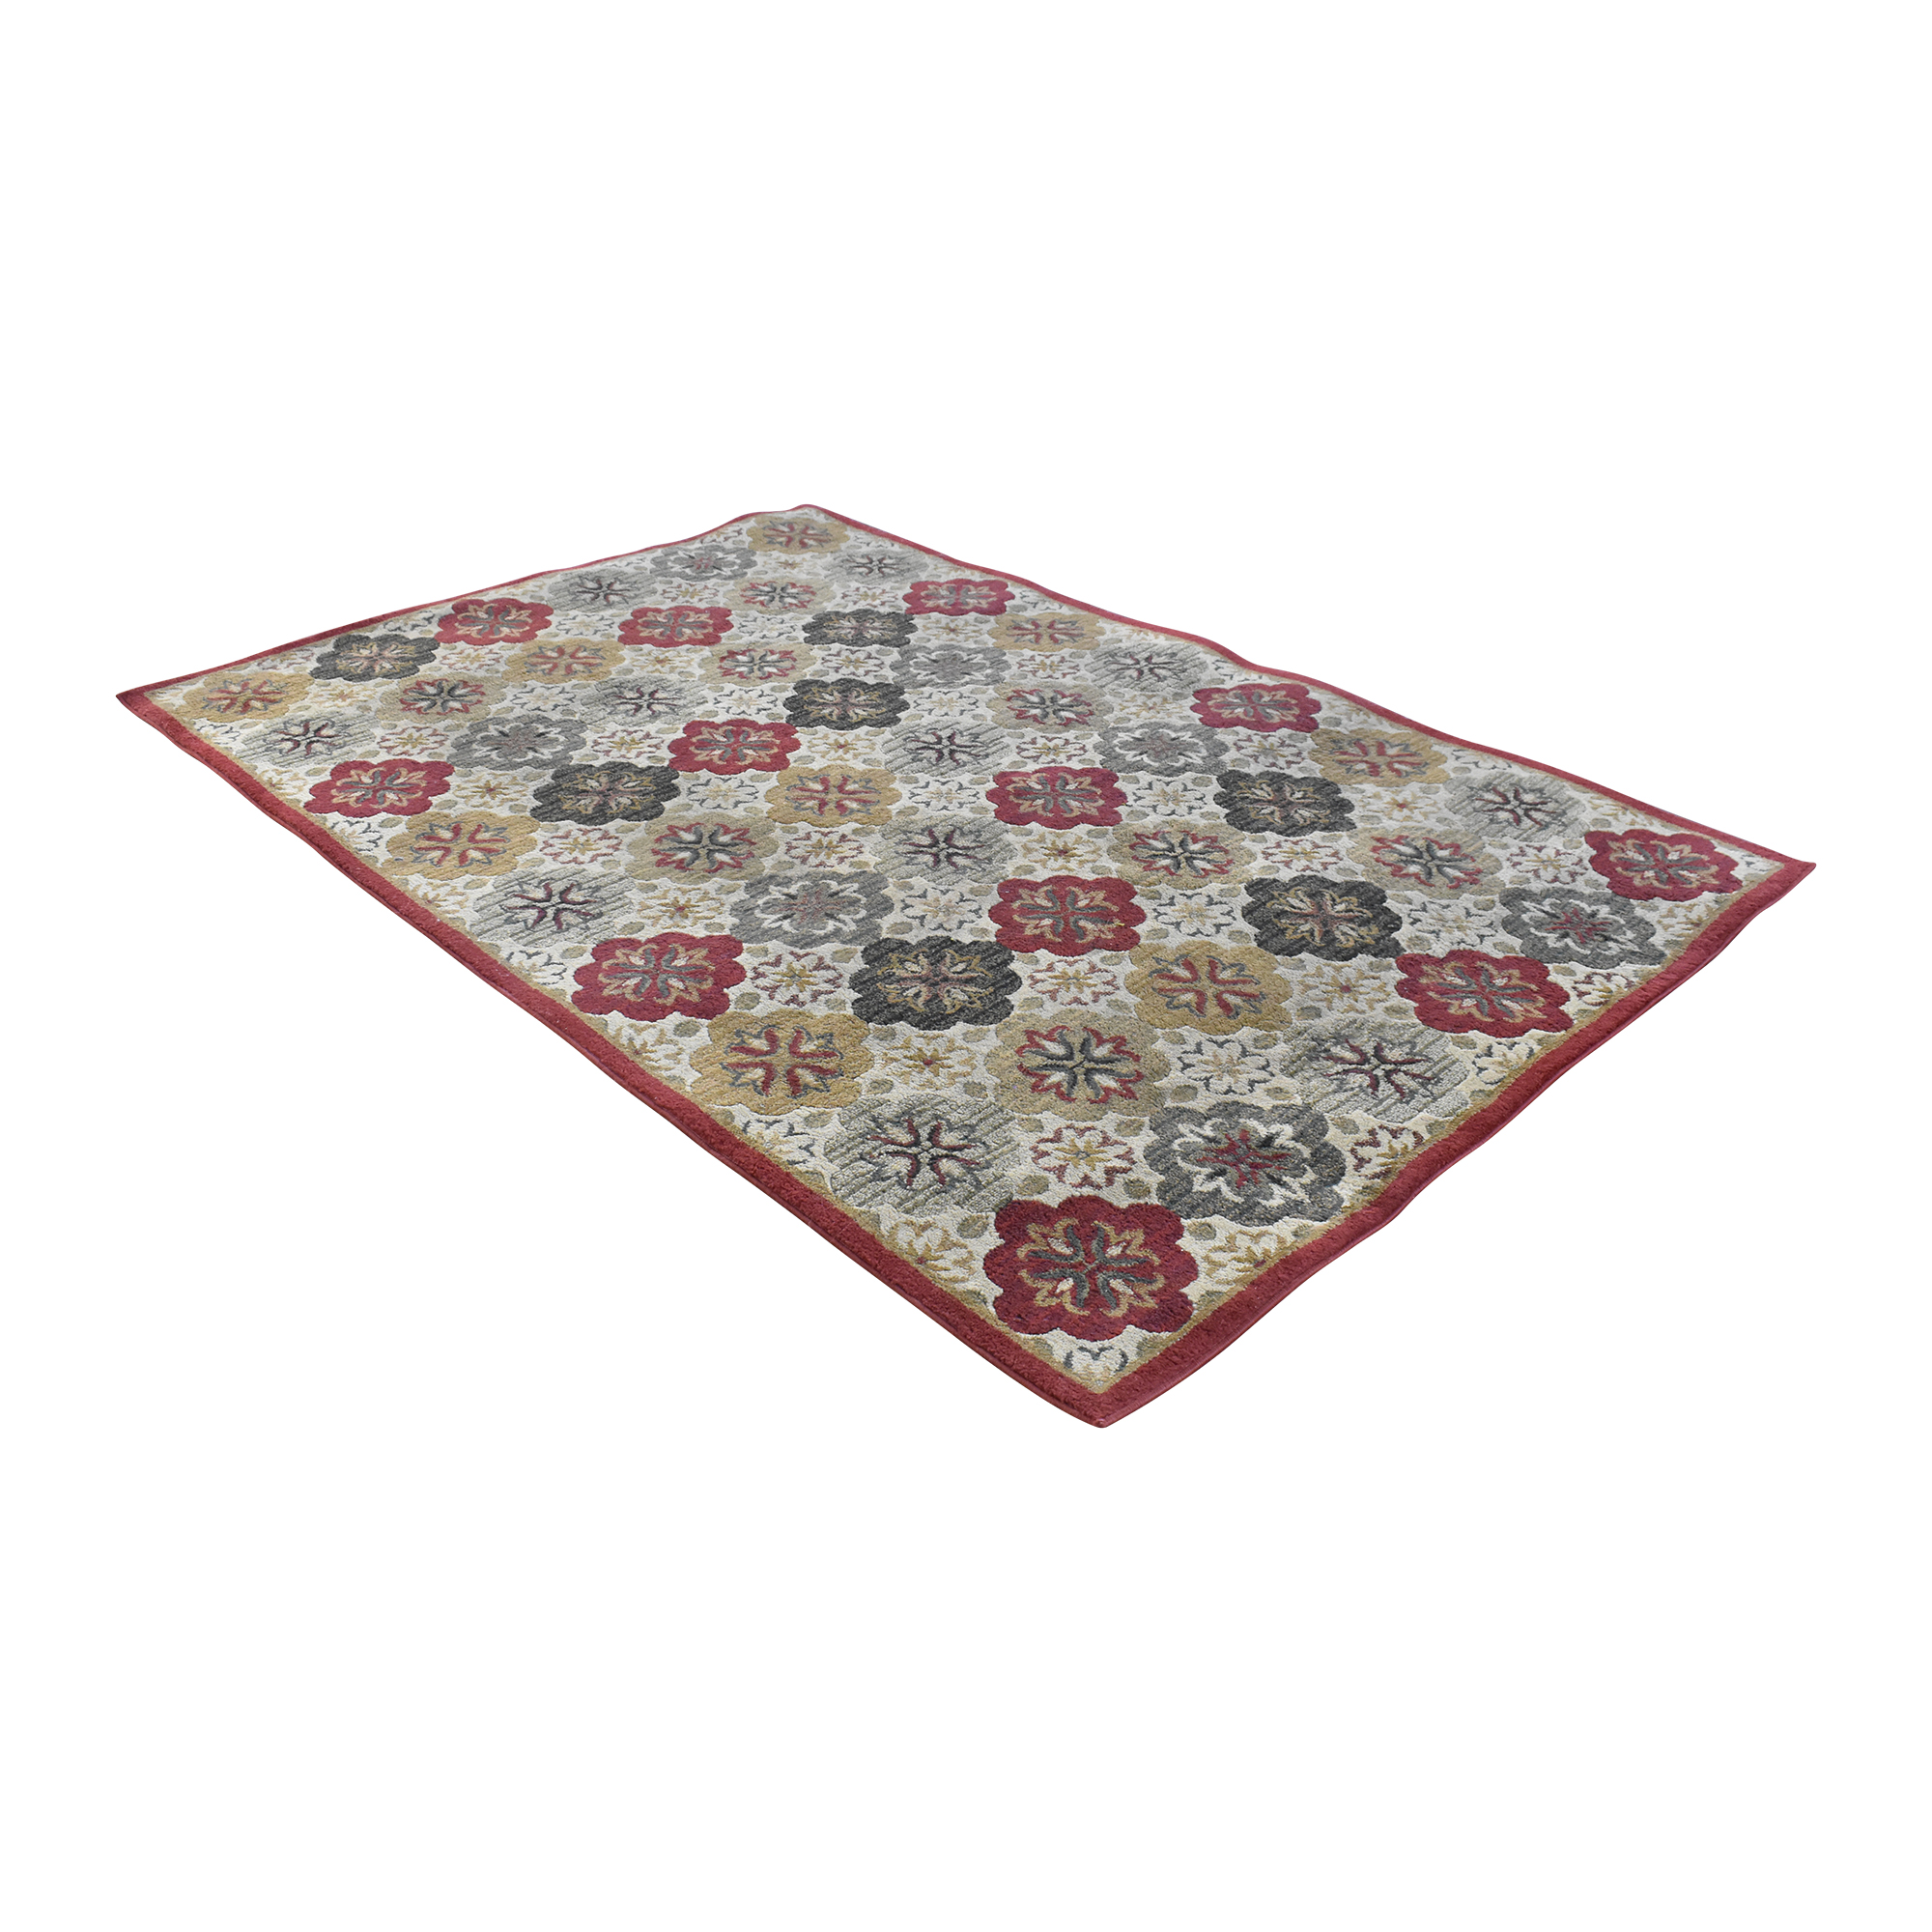 Fiezy Rugs Fiezy Rugs Keystone Collection Area Rug Decor